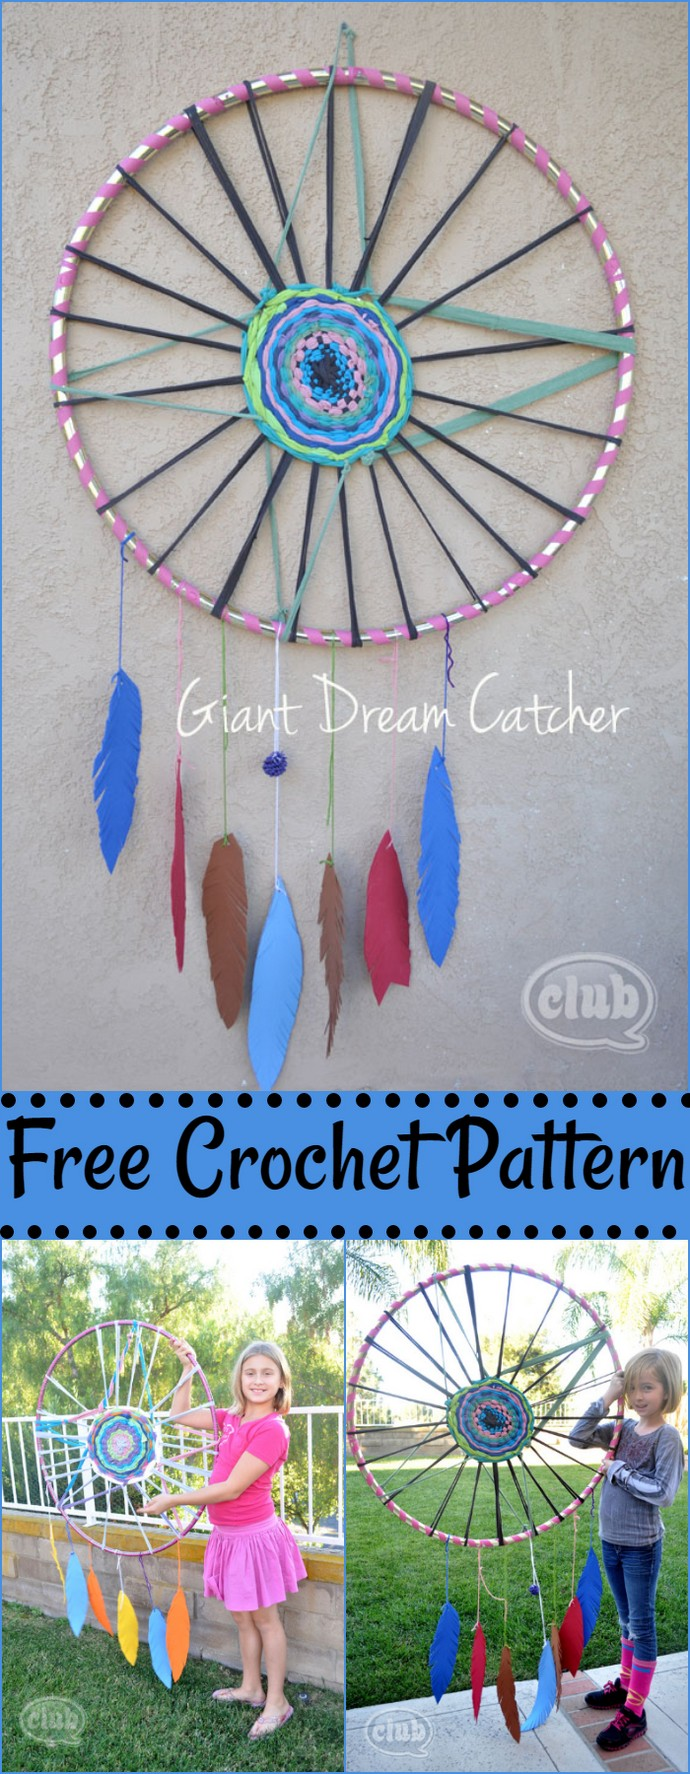 Giant Dream Catcher Craft For Tweens With Big Dreams